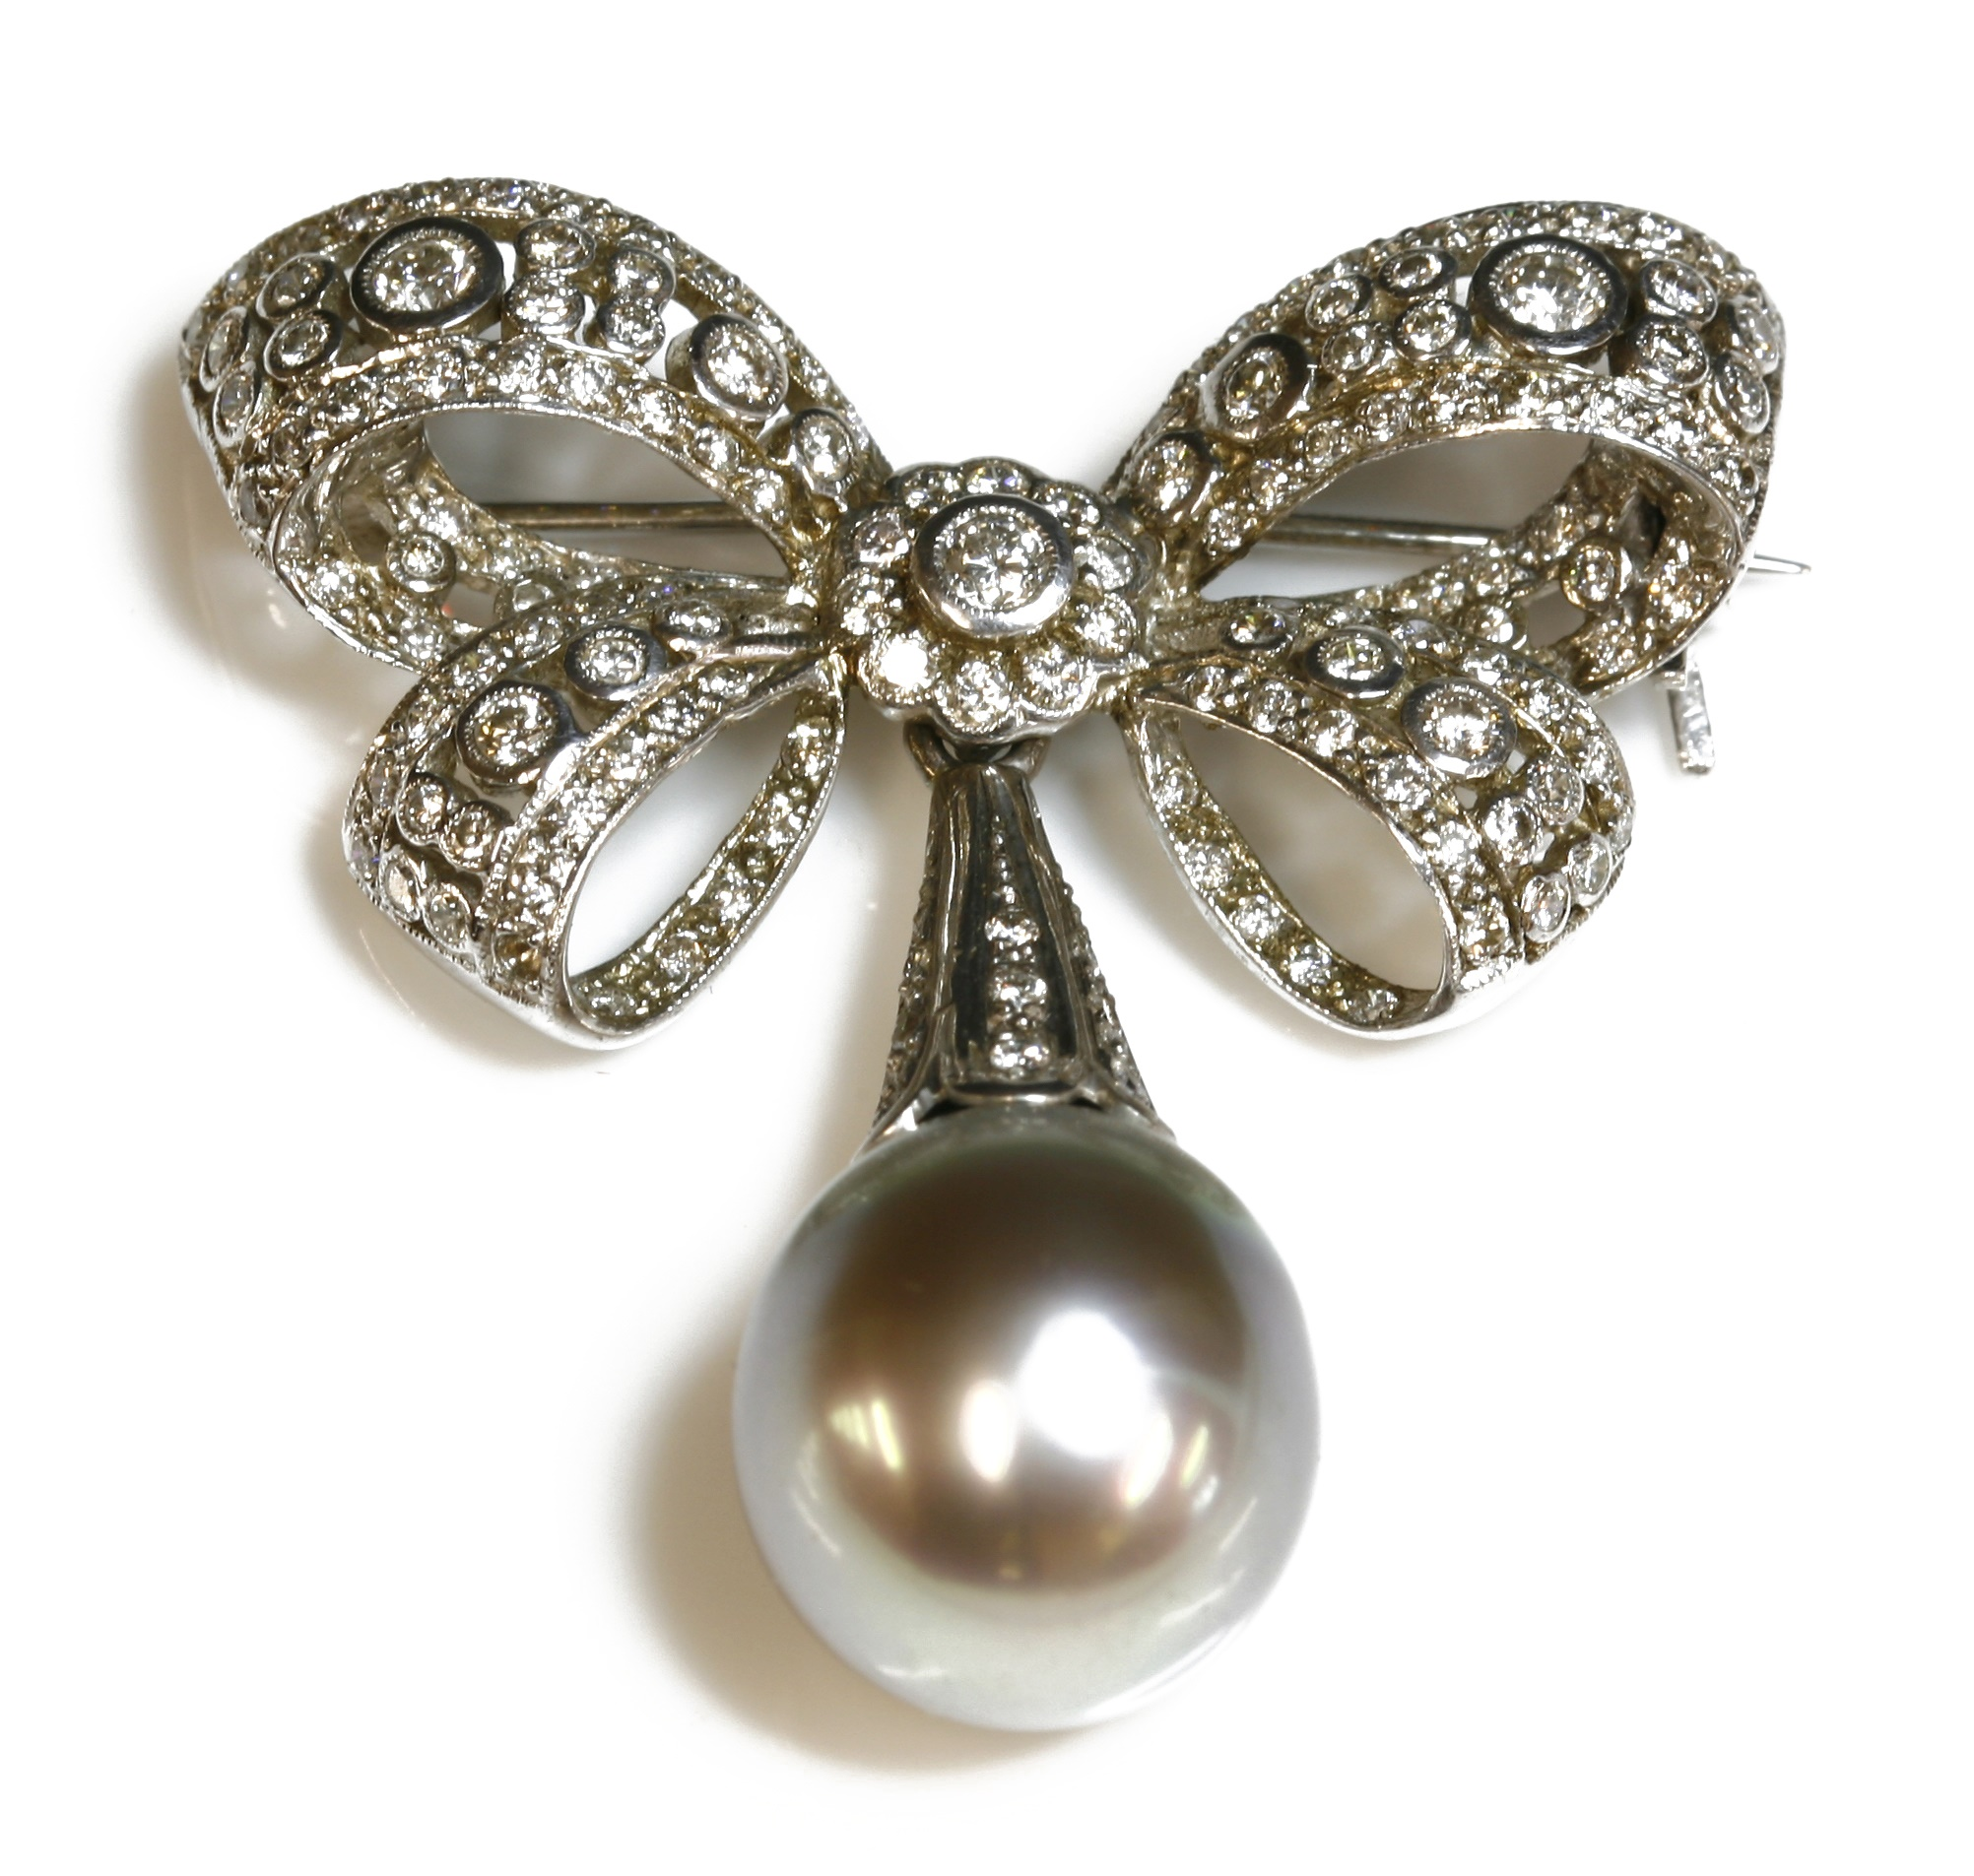 A white gold, Tahitian cultured pearl and diamond bow brooch